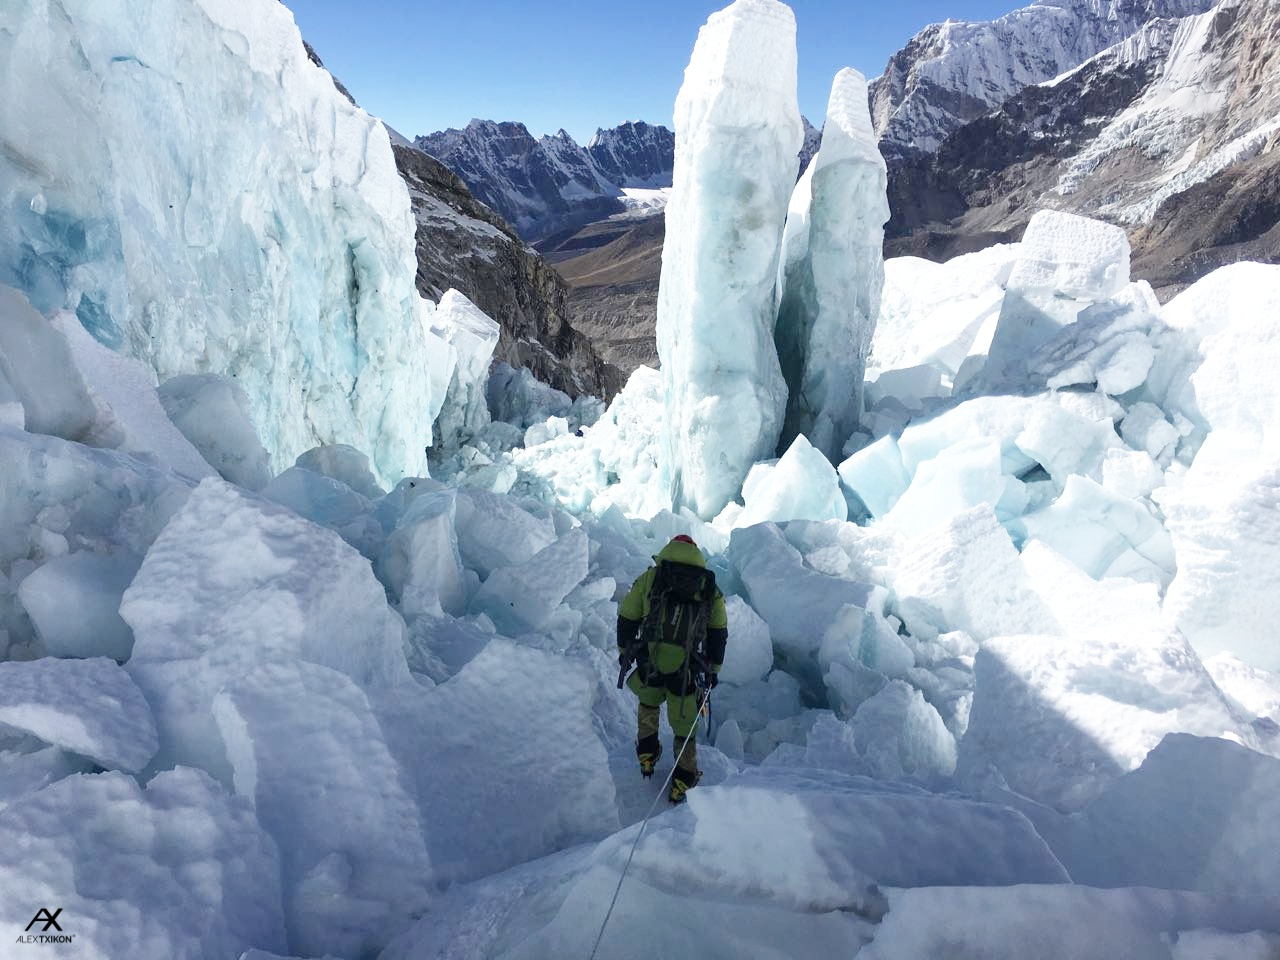 Txikon in the Khumbu icefall last winter. Photo © Alex Txikon.